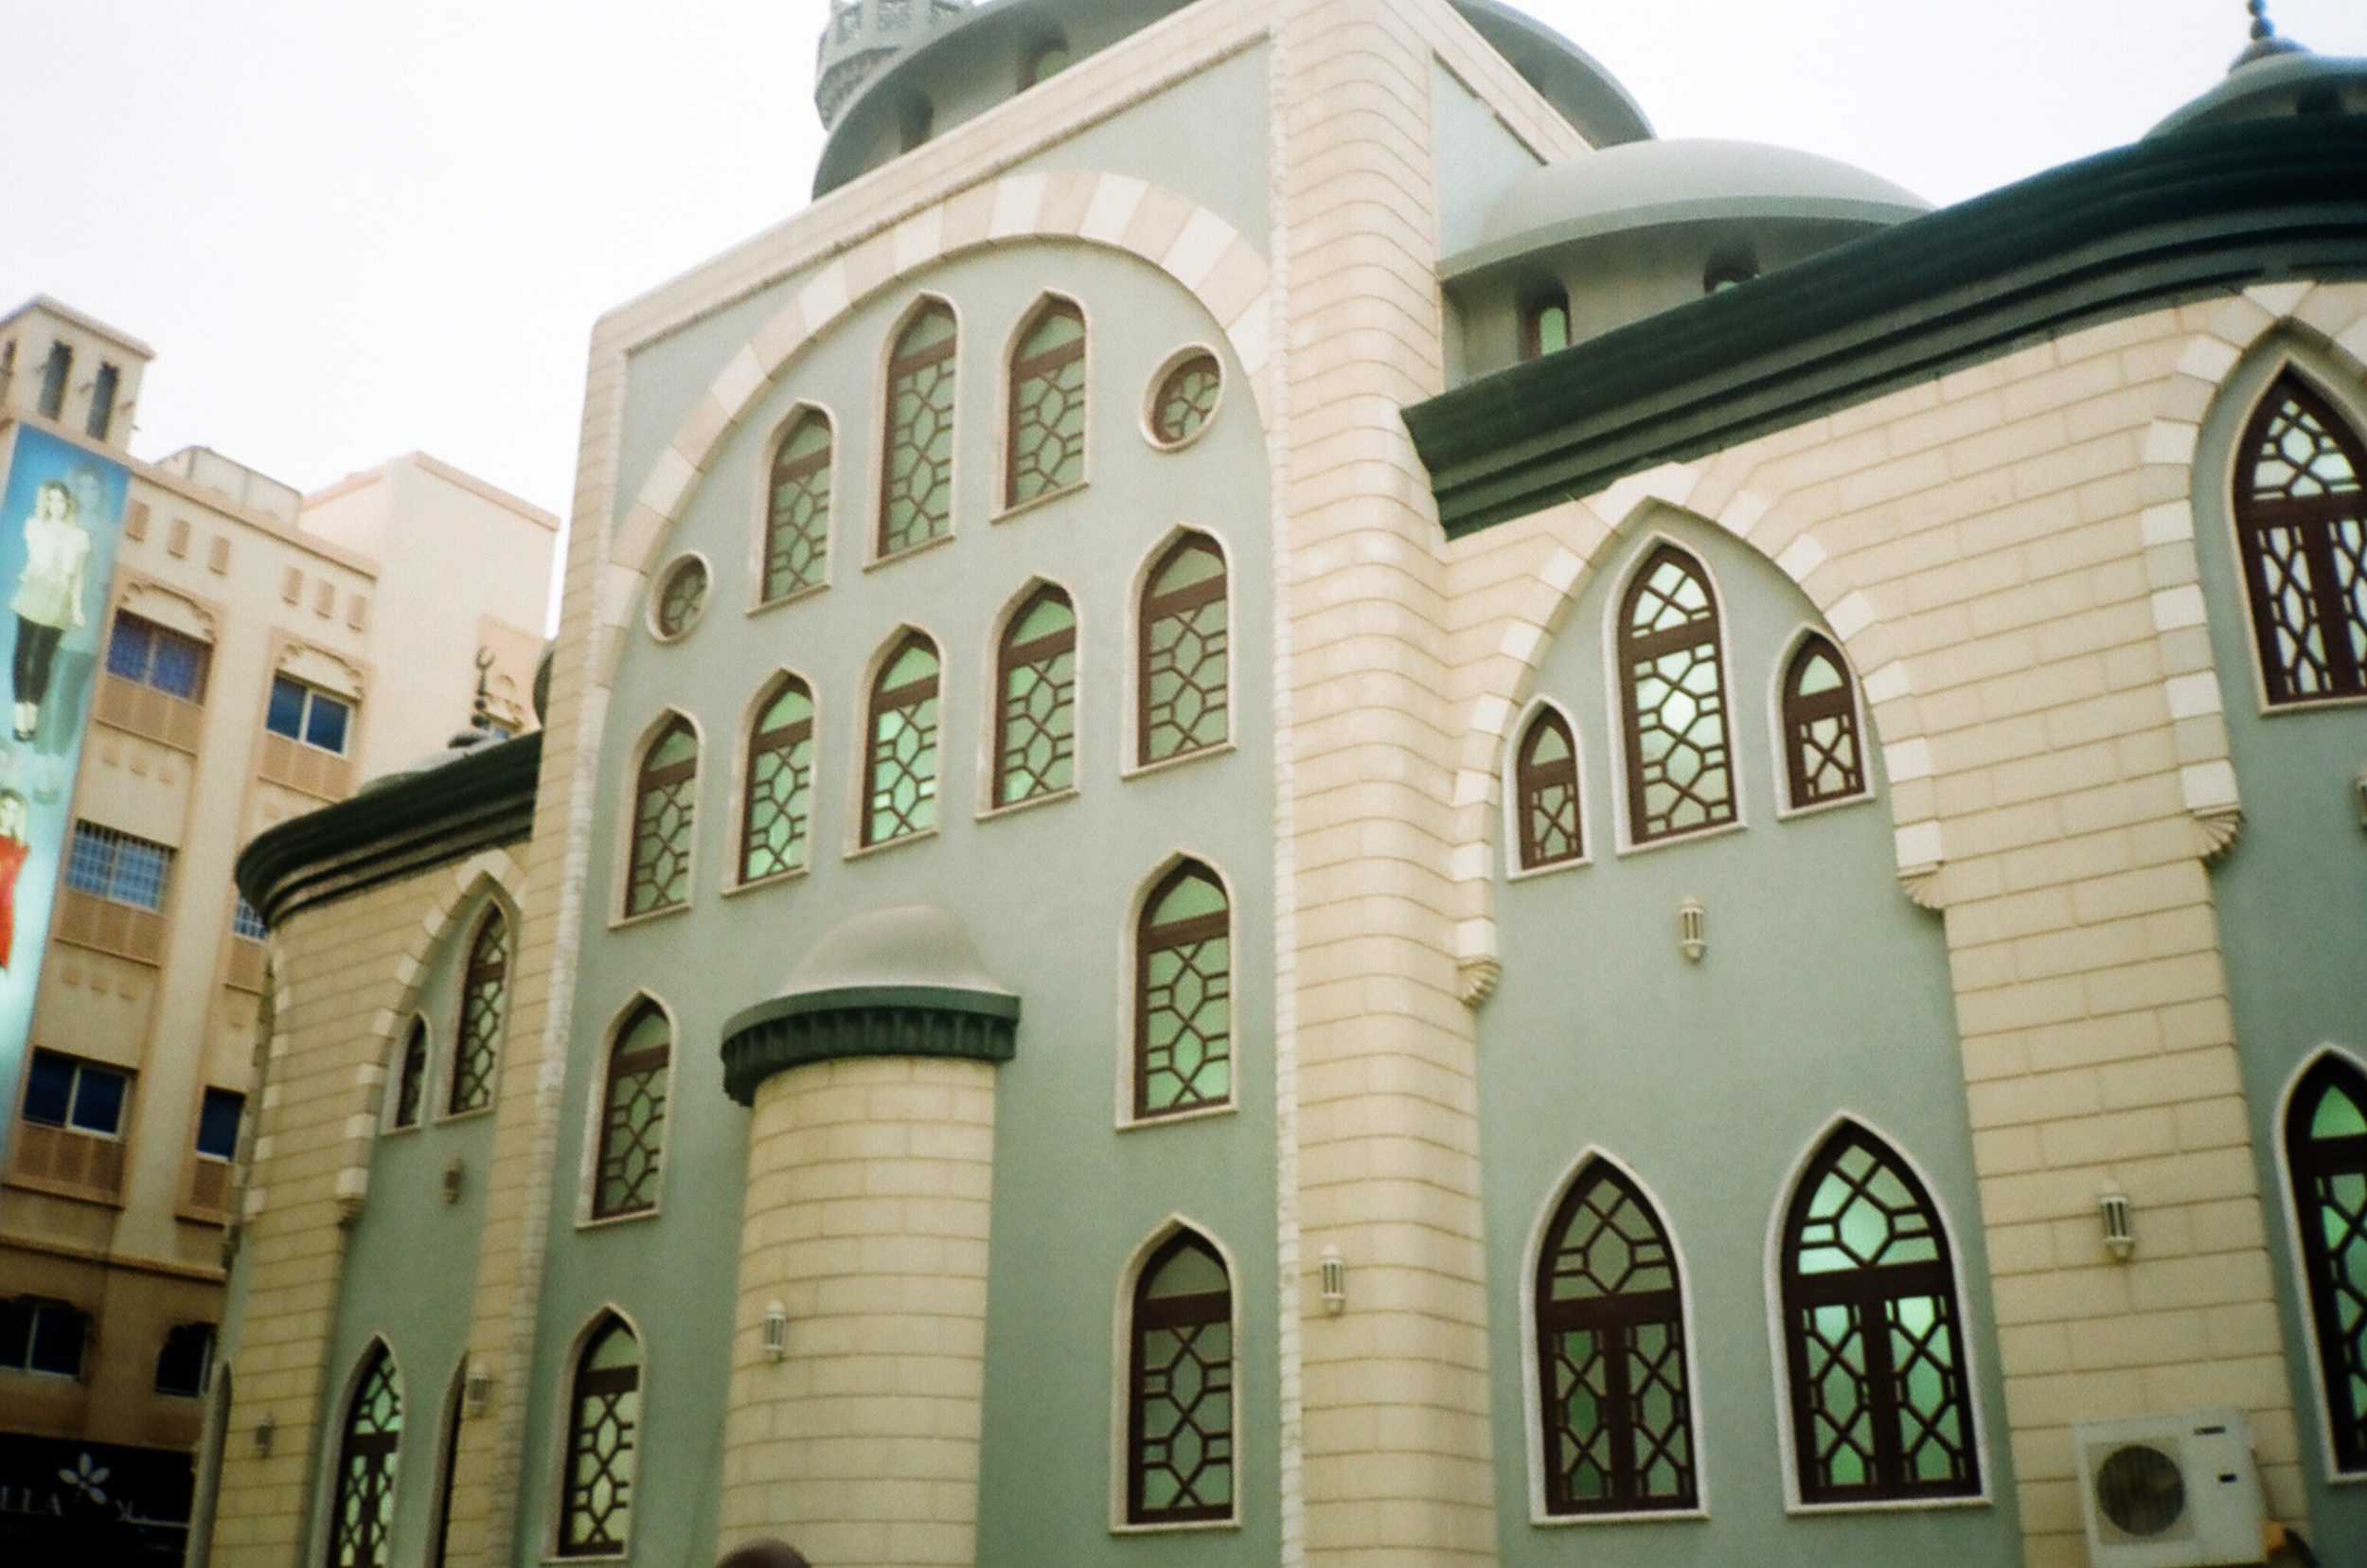 this mosque had the nicest colors